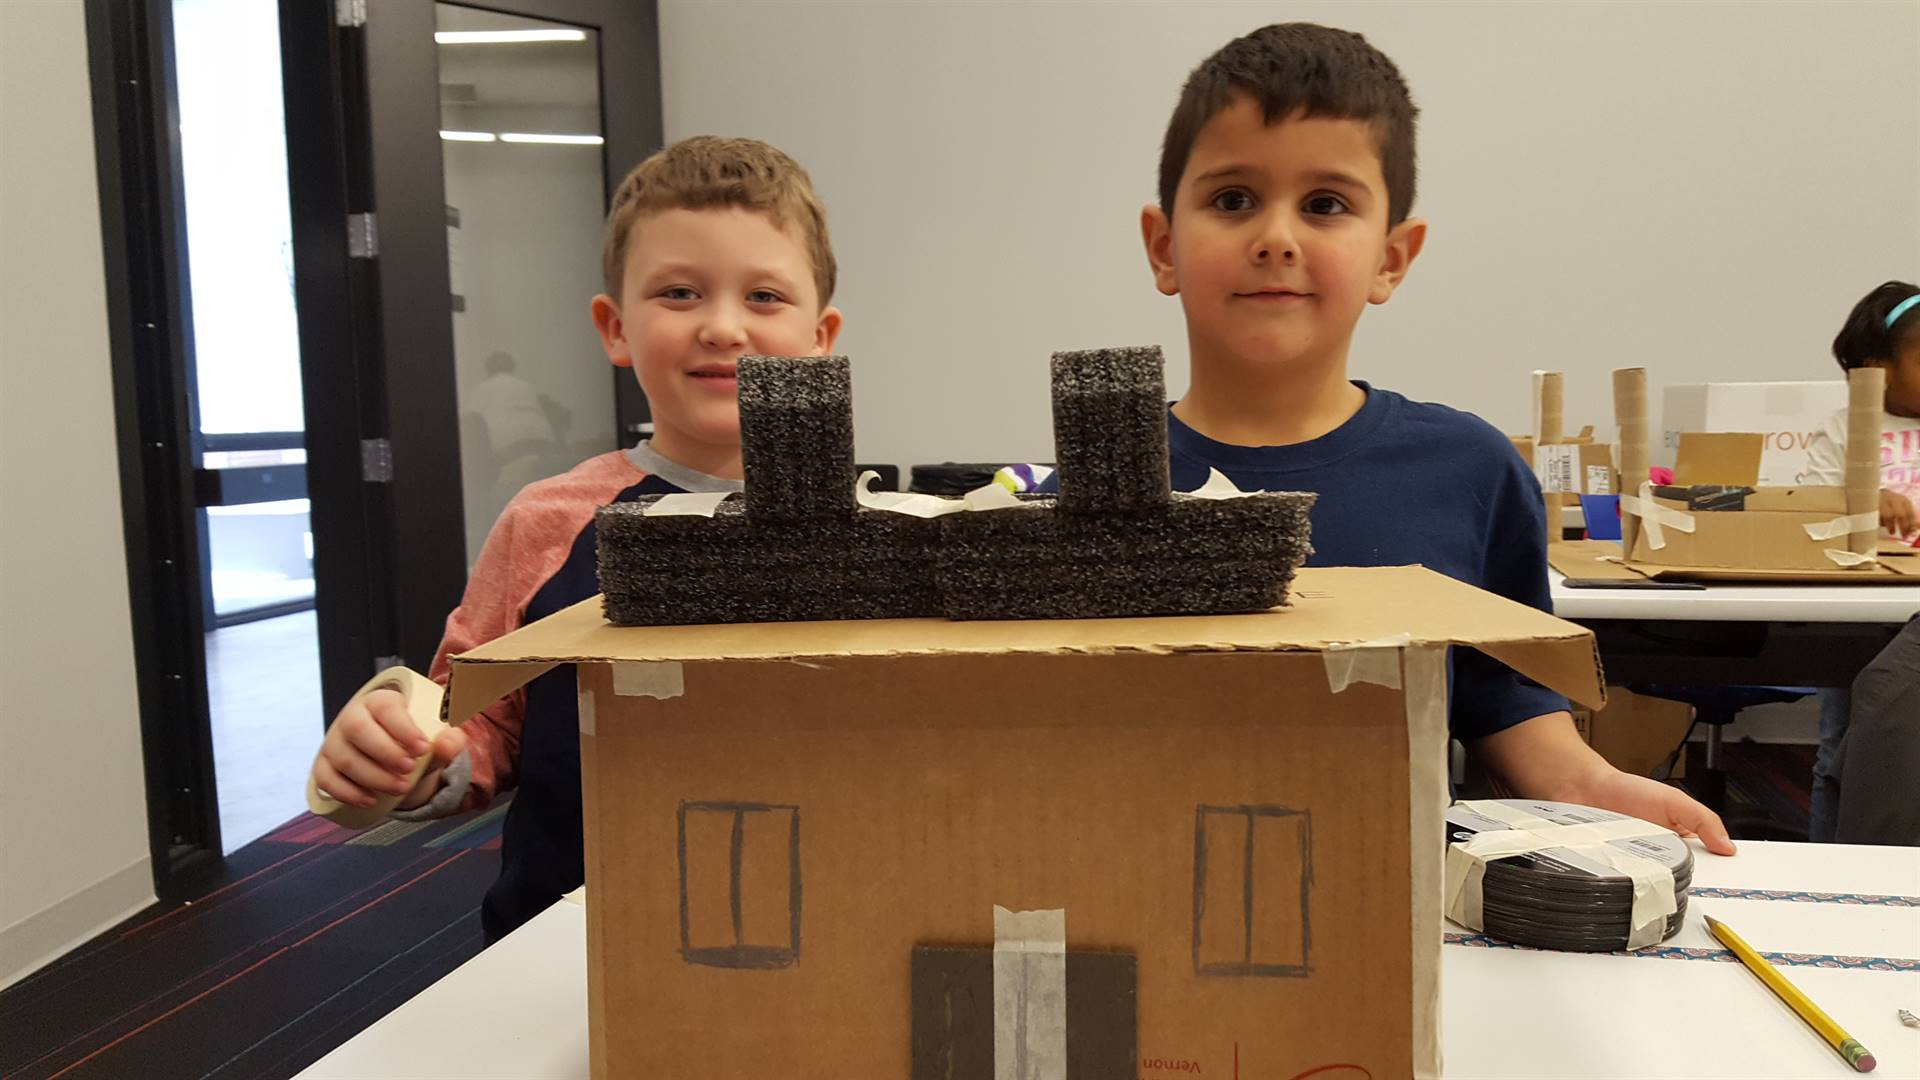 2 students with building